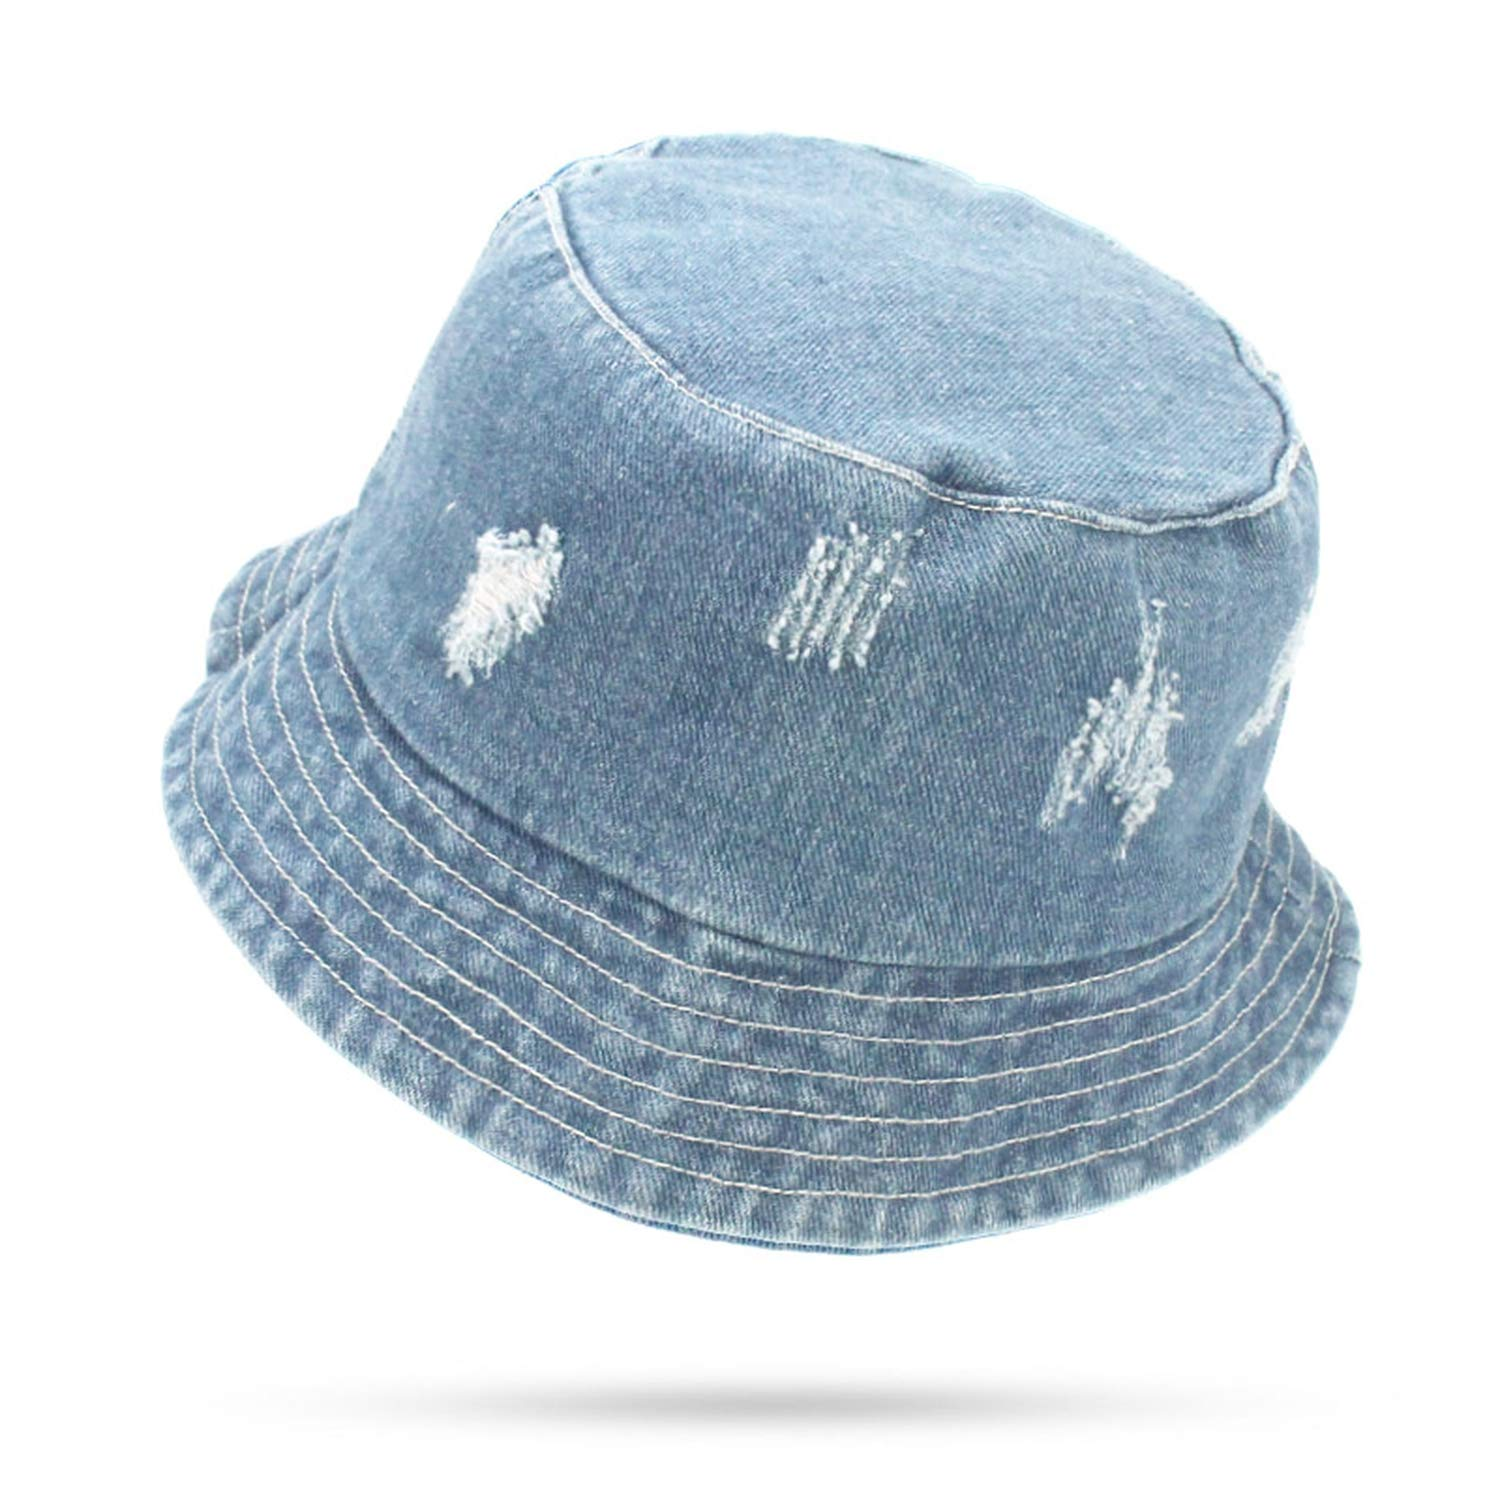 Summer Washed Denim Sun Hat Women Floppy Cap Ladies Beach Bucket Hats  Cotton Foldable Fishing Fisherman Hats at Amazon Women s Clothing store  bbf9a463473